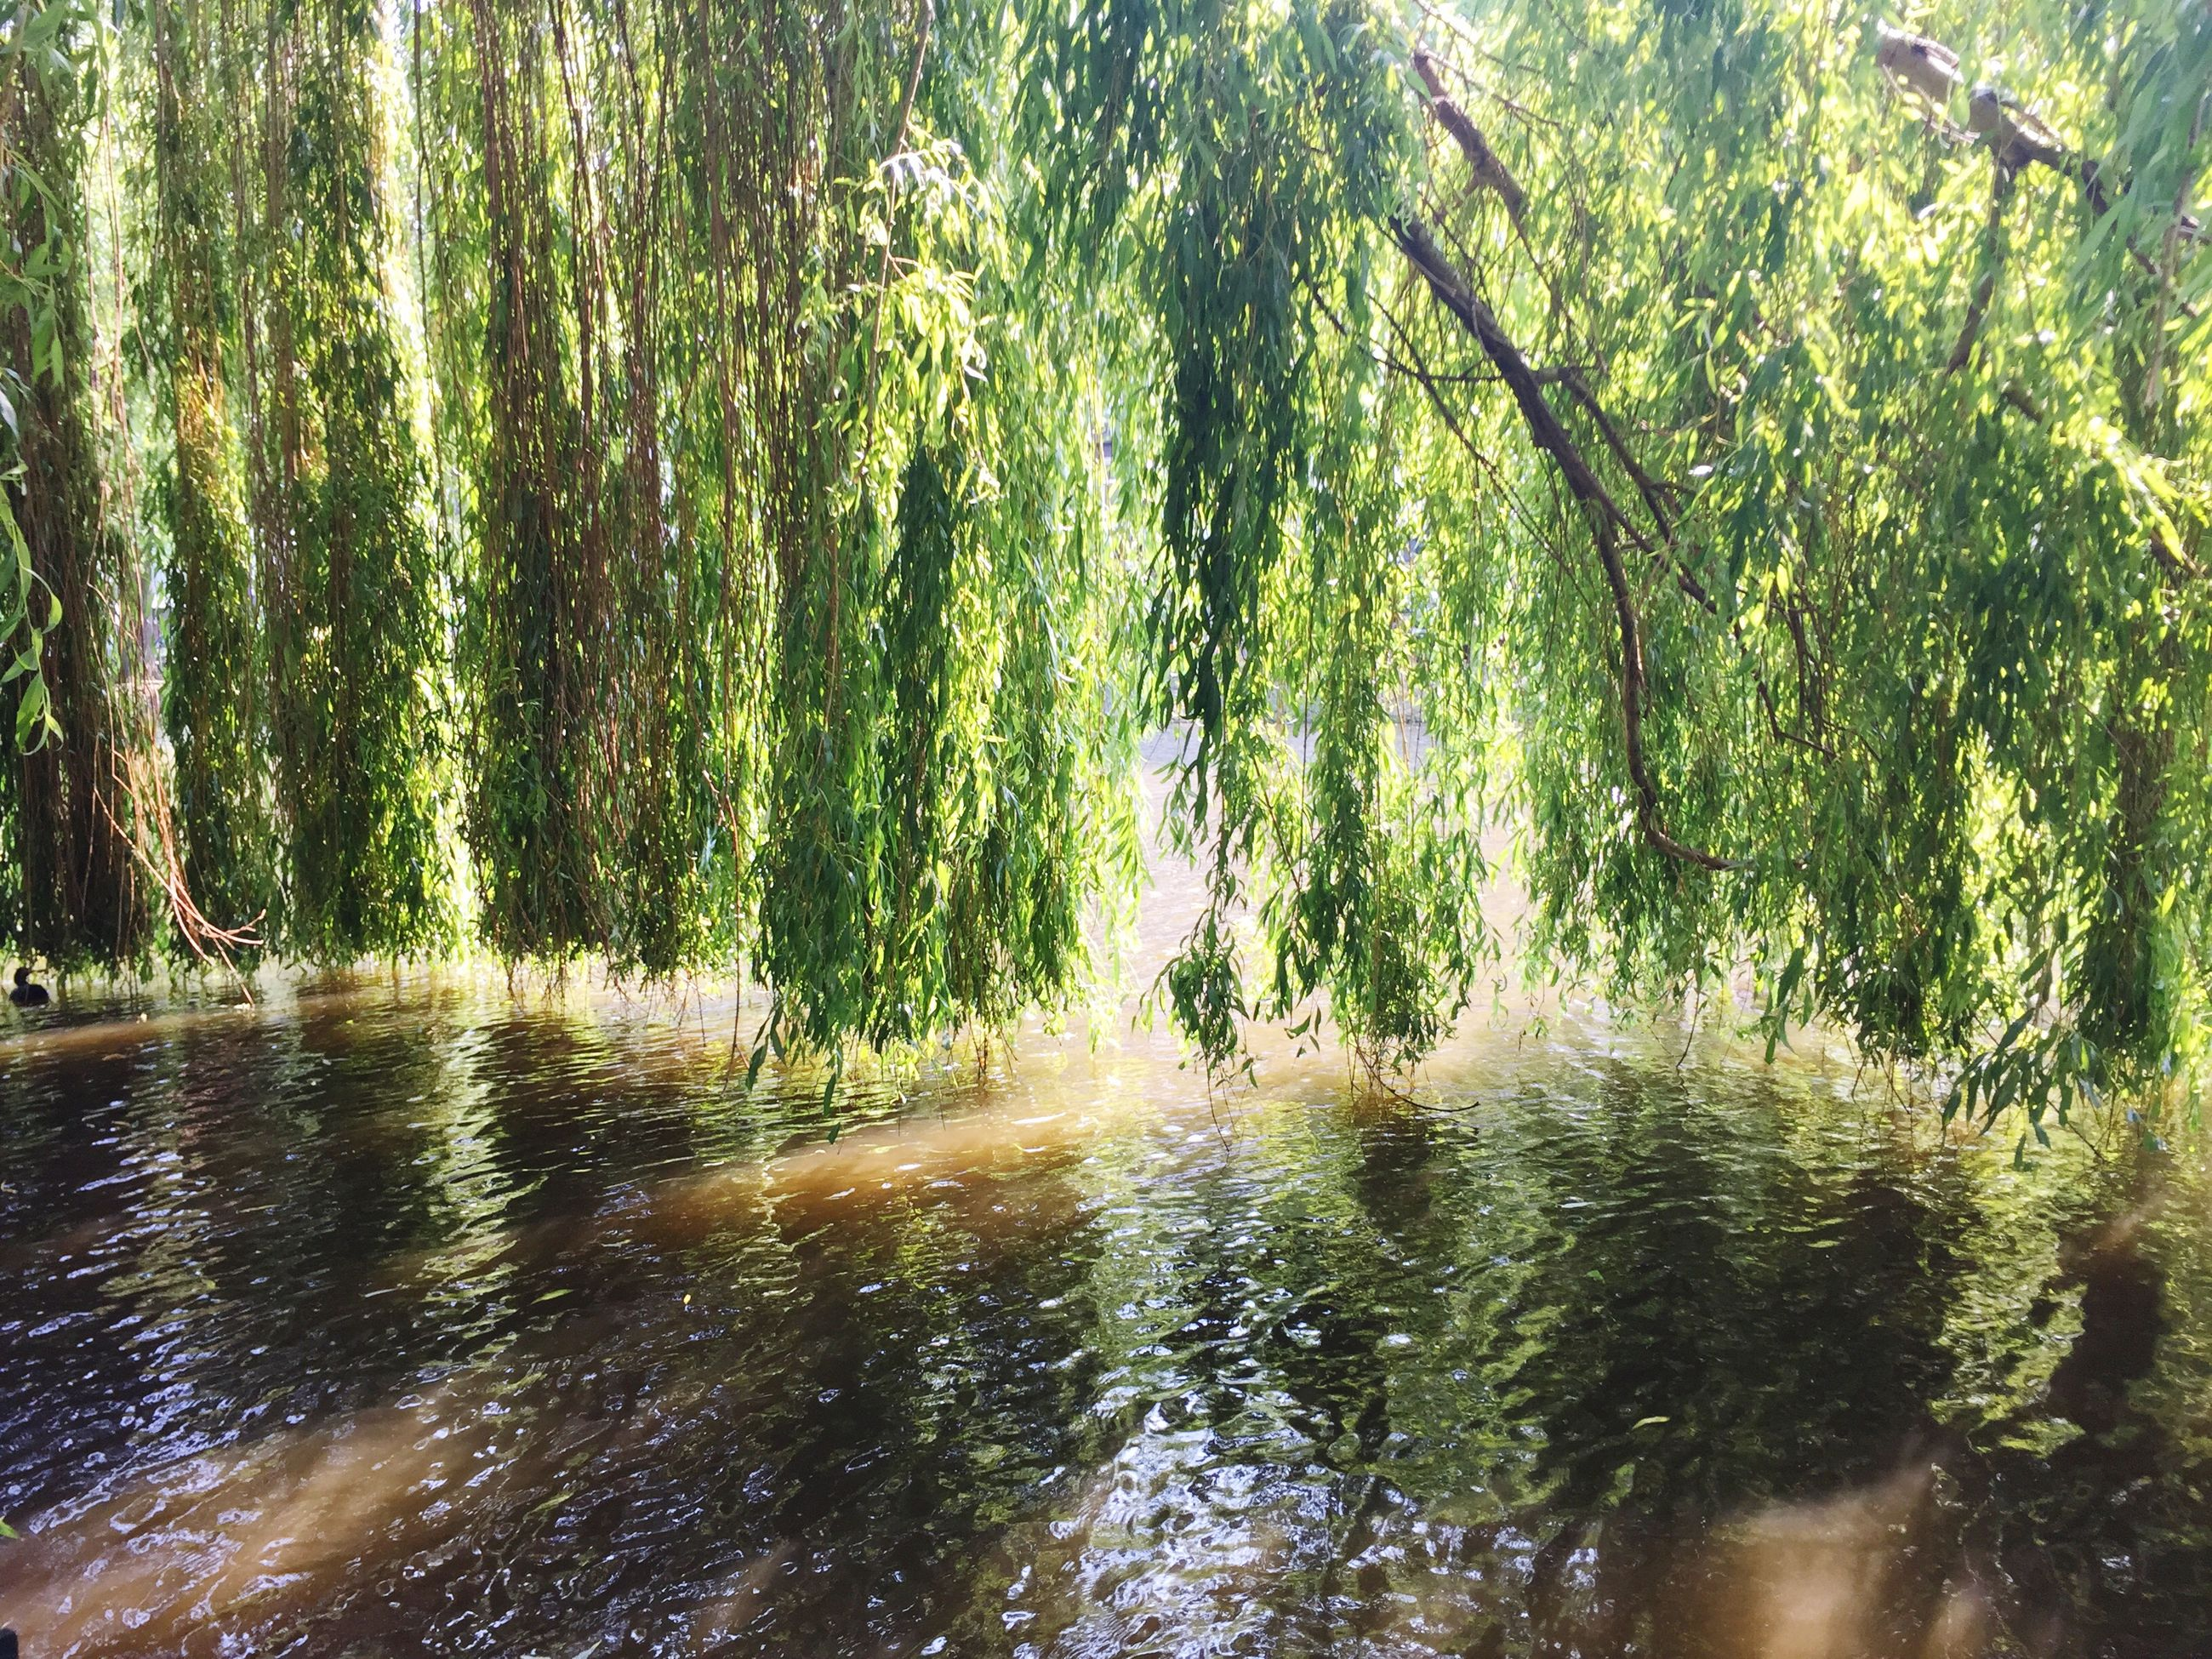 water, tree, waterfront, reflection, tranquility, nature, tranquil scene, beauty in nature, lake, growth, scenics, forest, green color, rippled, river, branch, idyllic, day, sunlight, outdoors